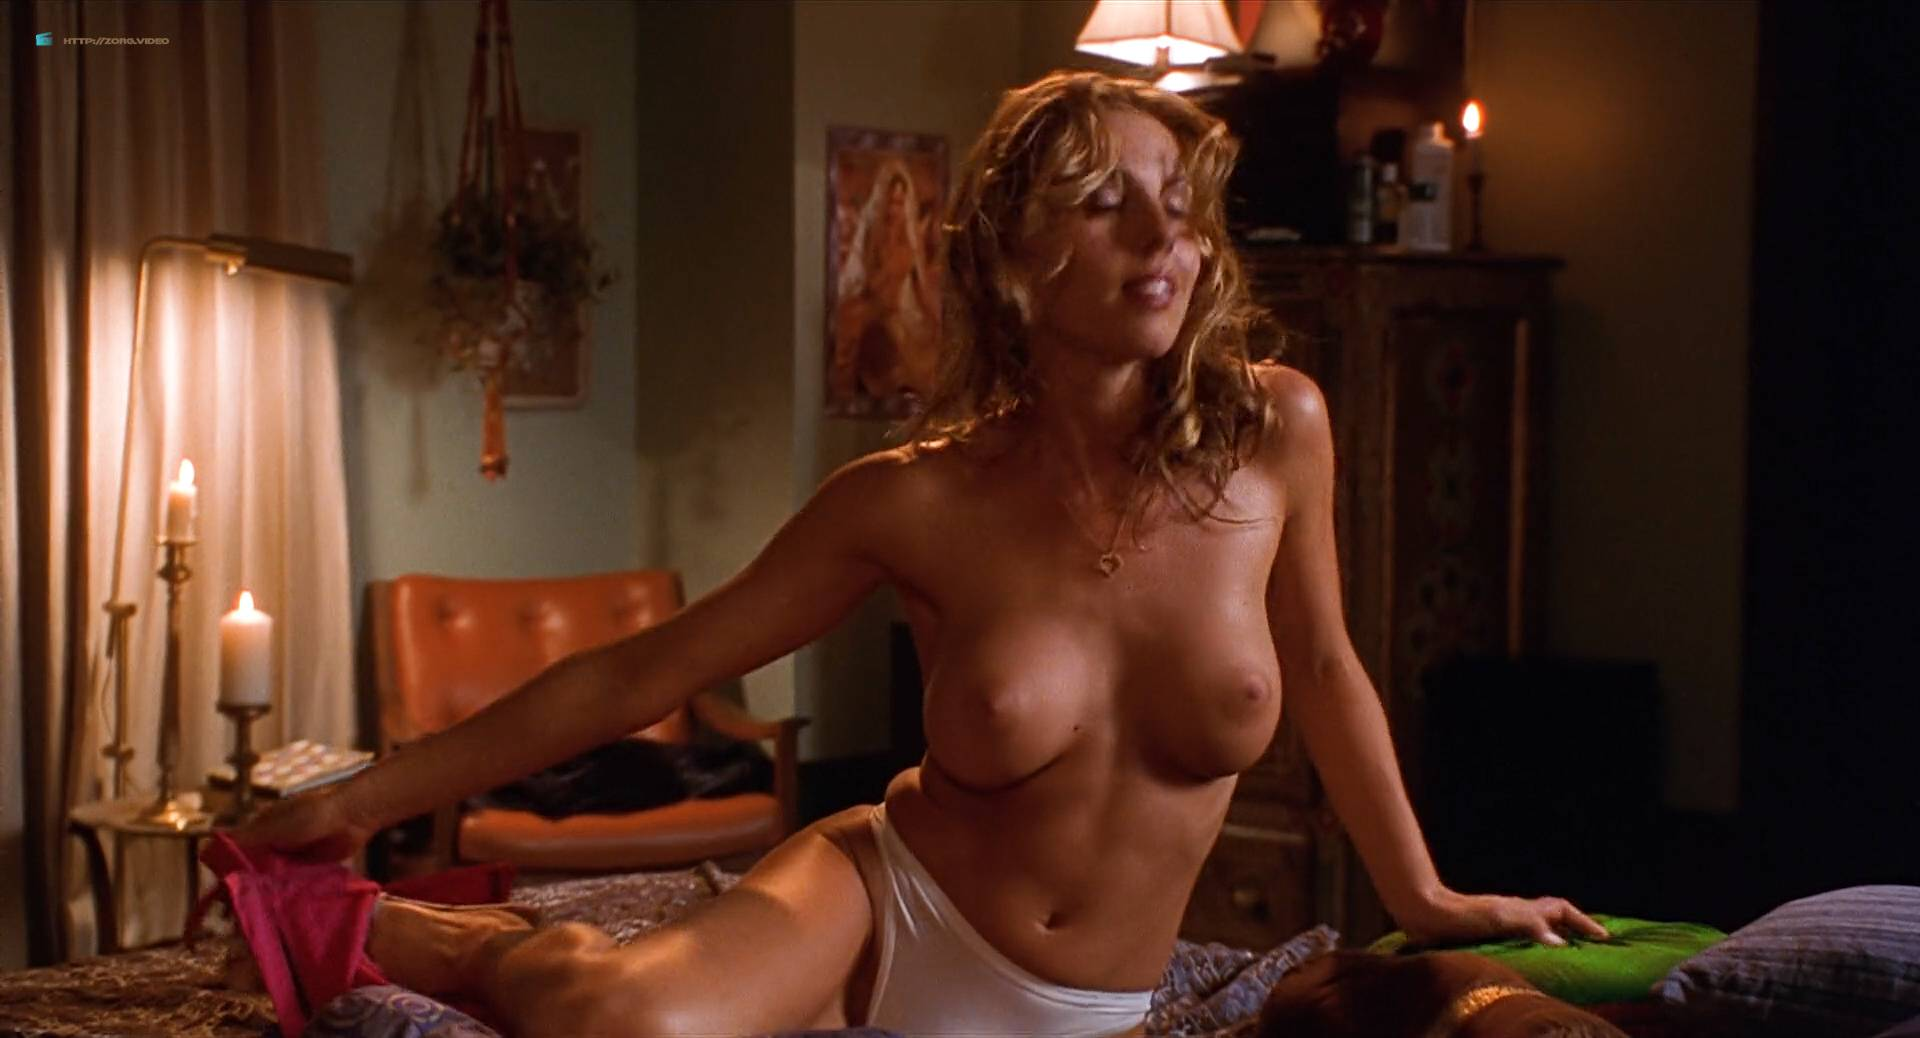 from Carter girls from van wilder nude